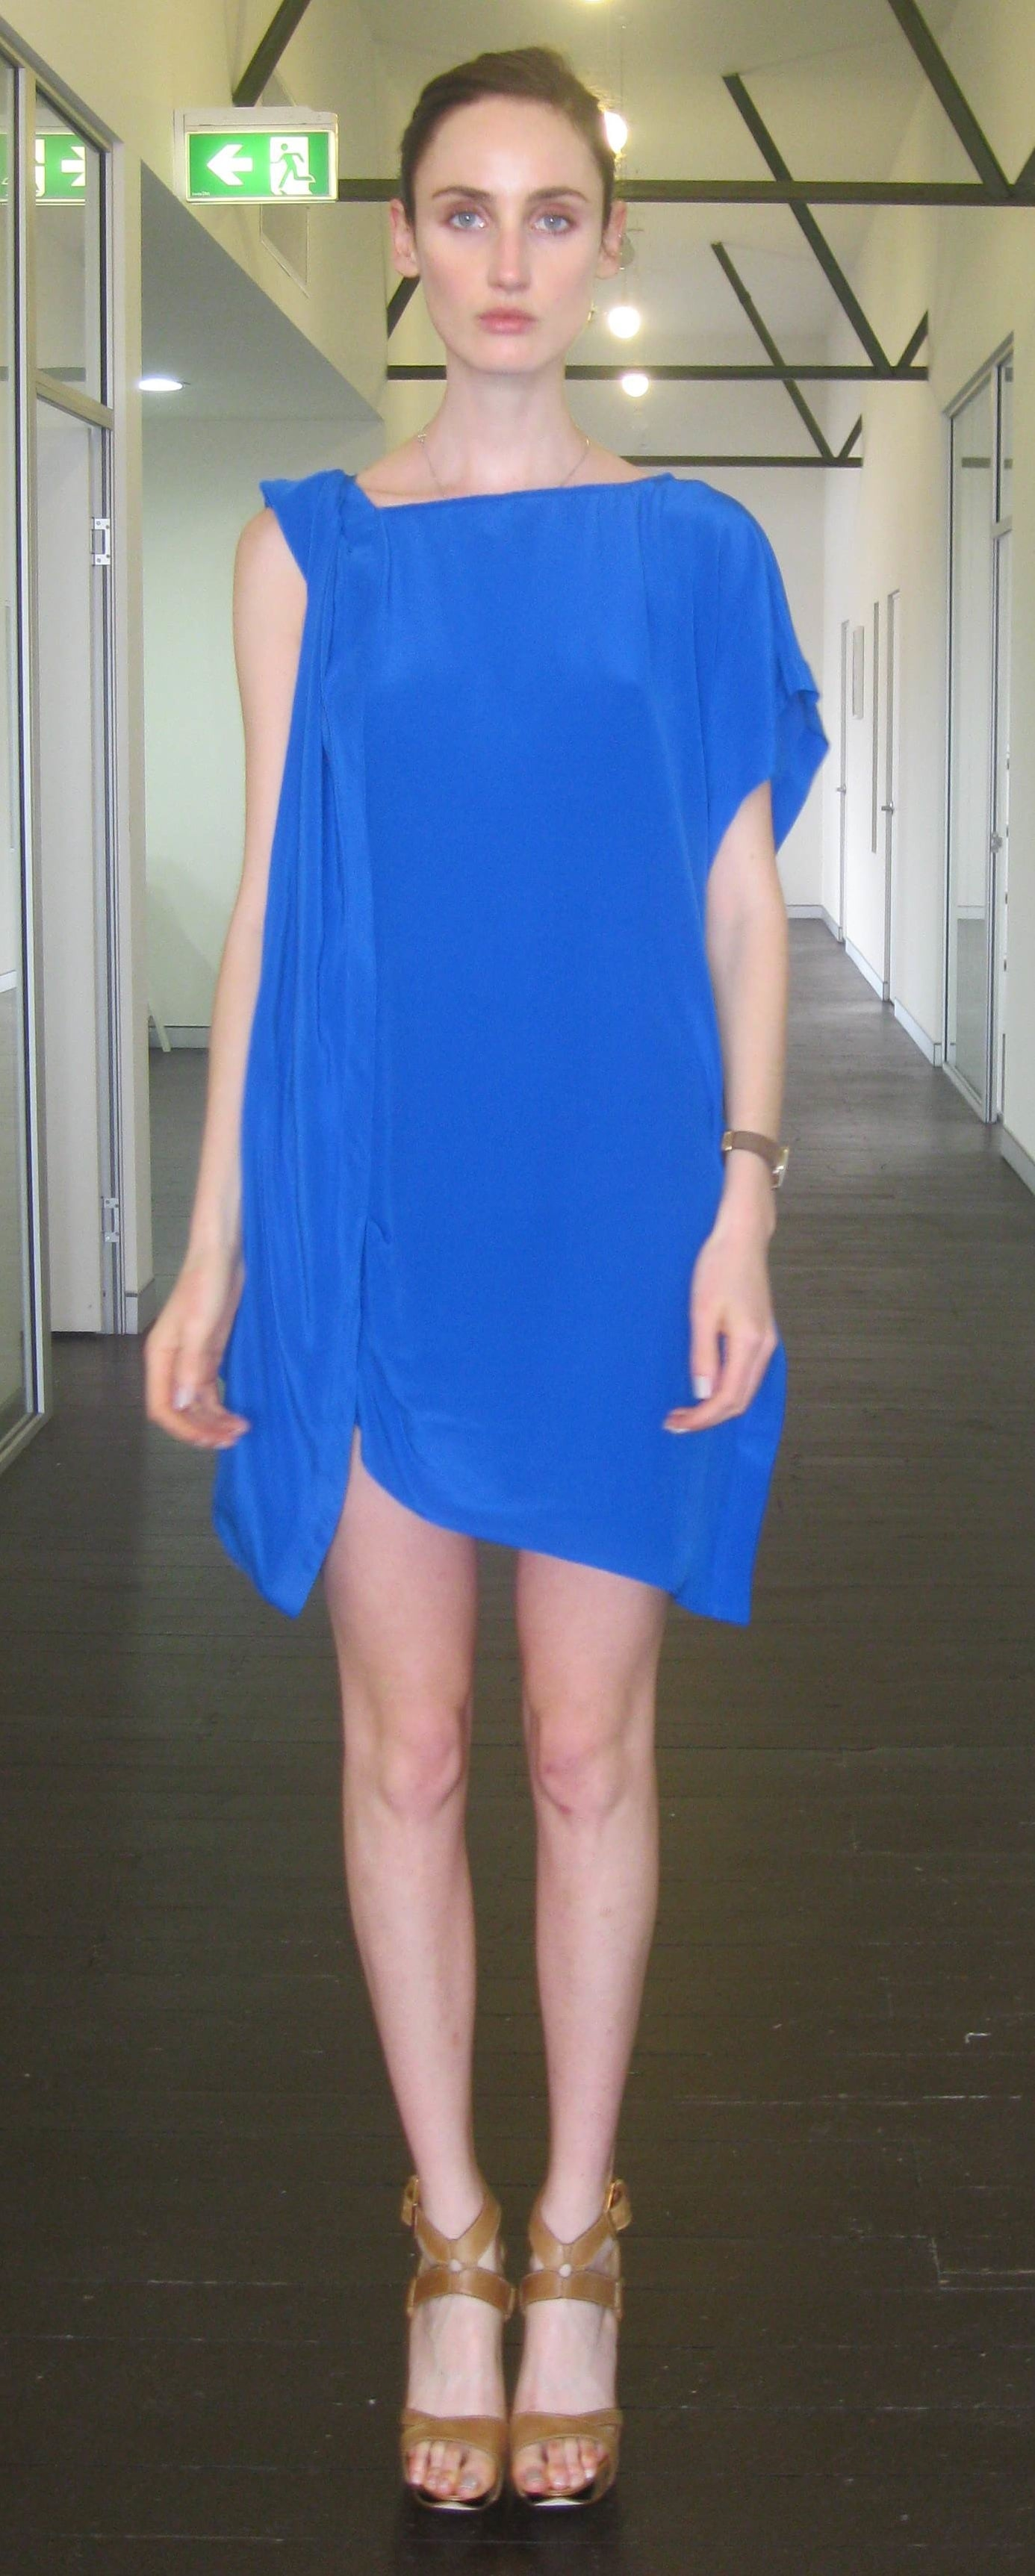 Shots from Manning Cartell's model casting. We like the look of this easy to wear but chic dress!